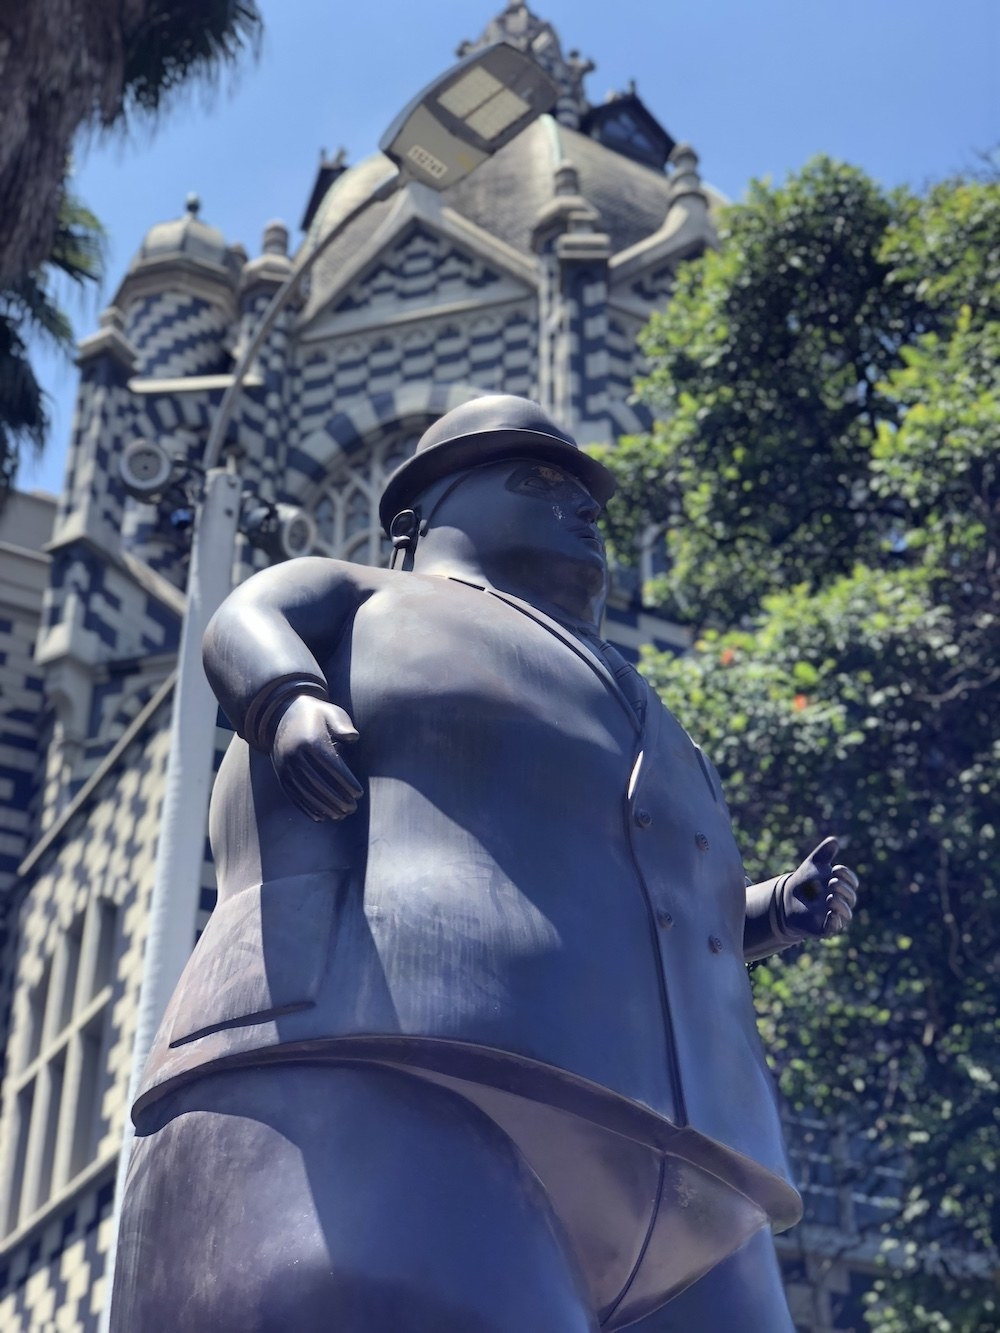 Fernando Botero is a famous Colombian artist who donated several of his sculptures to the plaza.